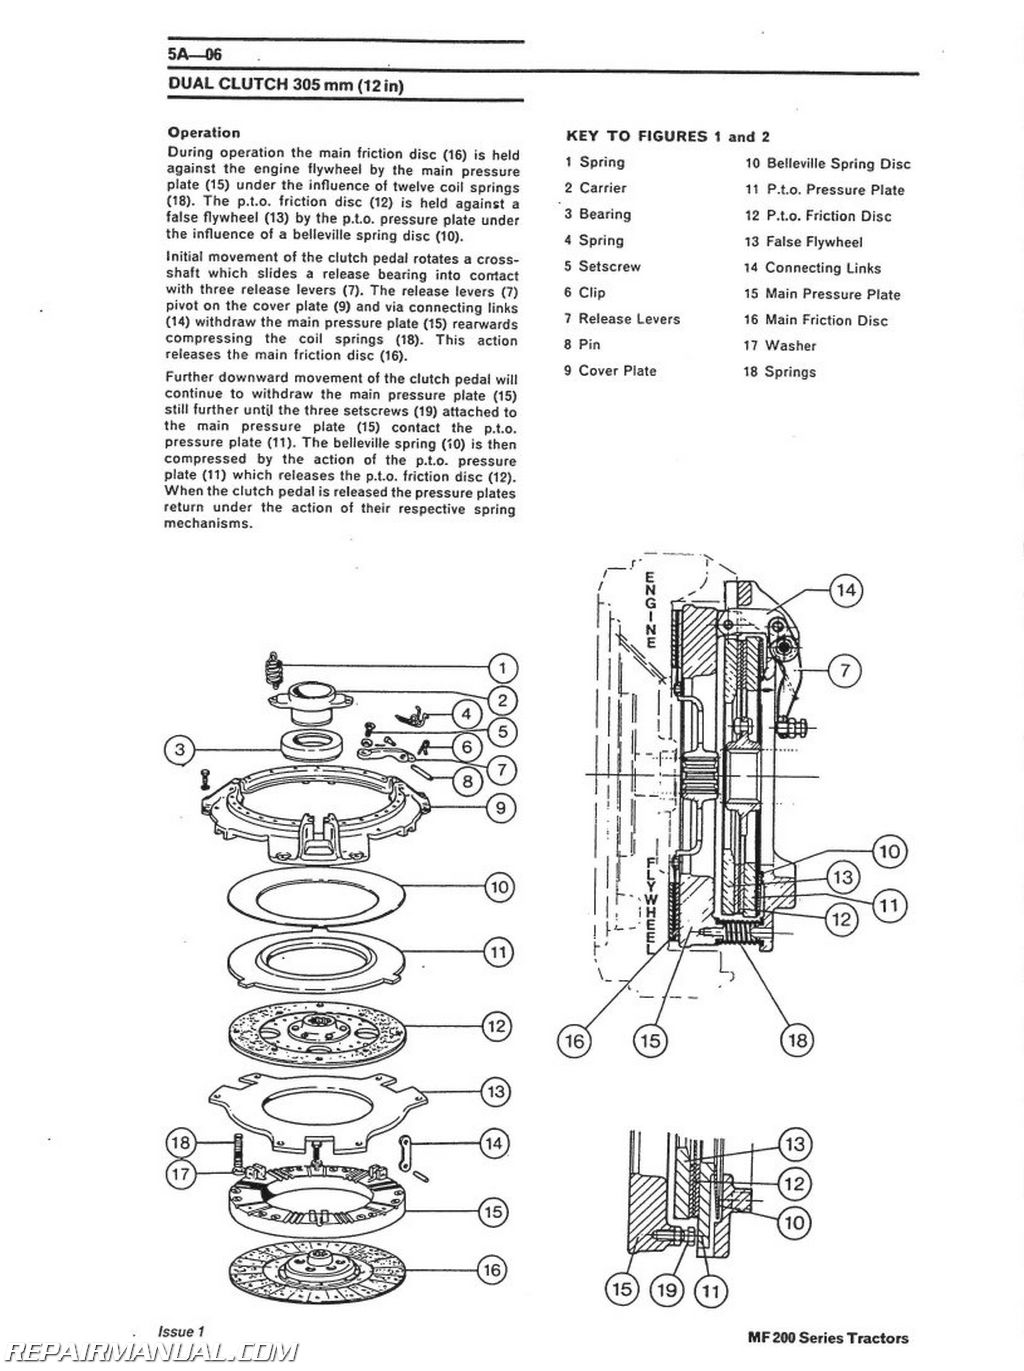 Gilson Tractor Wiring Diagram on jacobsen snowblower parts diagram, snapper riding mower parts diagram, lawn mower wiring diagram, bolens snowblower diagram, gilson lawn tractor, gilson tractor parts, 1984 montgomery wards mower wiring diagram, gilson tractor model gil 33180 a, tecumseh snowblower ignition diagram, tecumseh engines wiring diagram, gilson lawn mower parts diagram, onan 4000 generator wiring diagram,